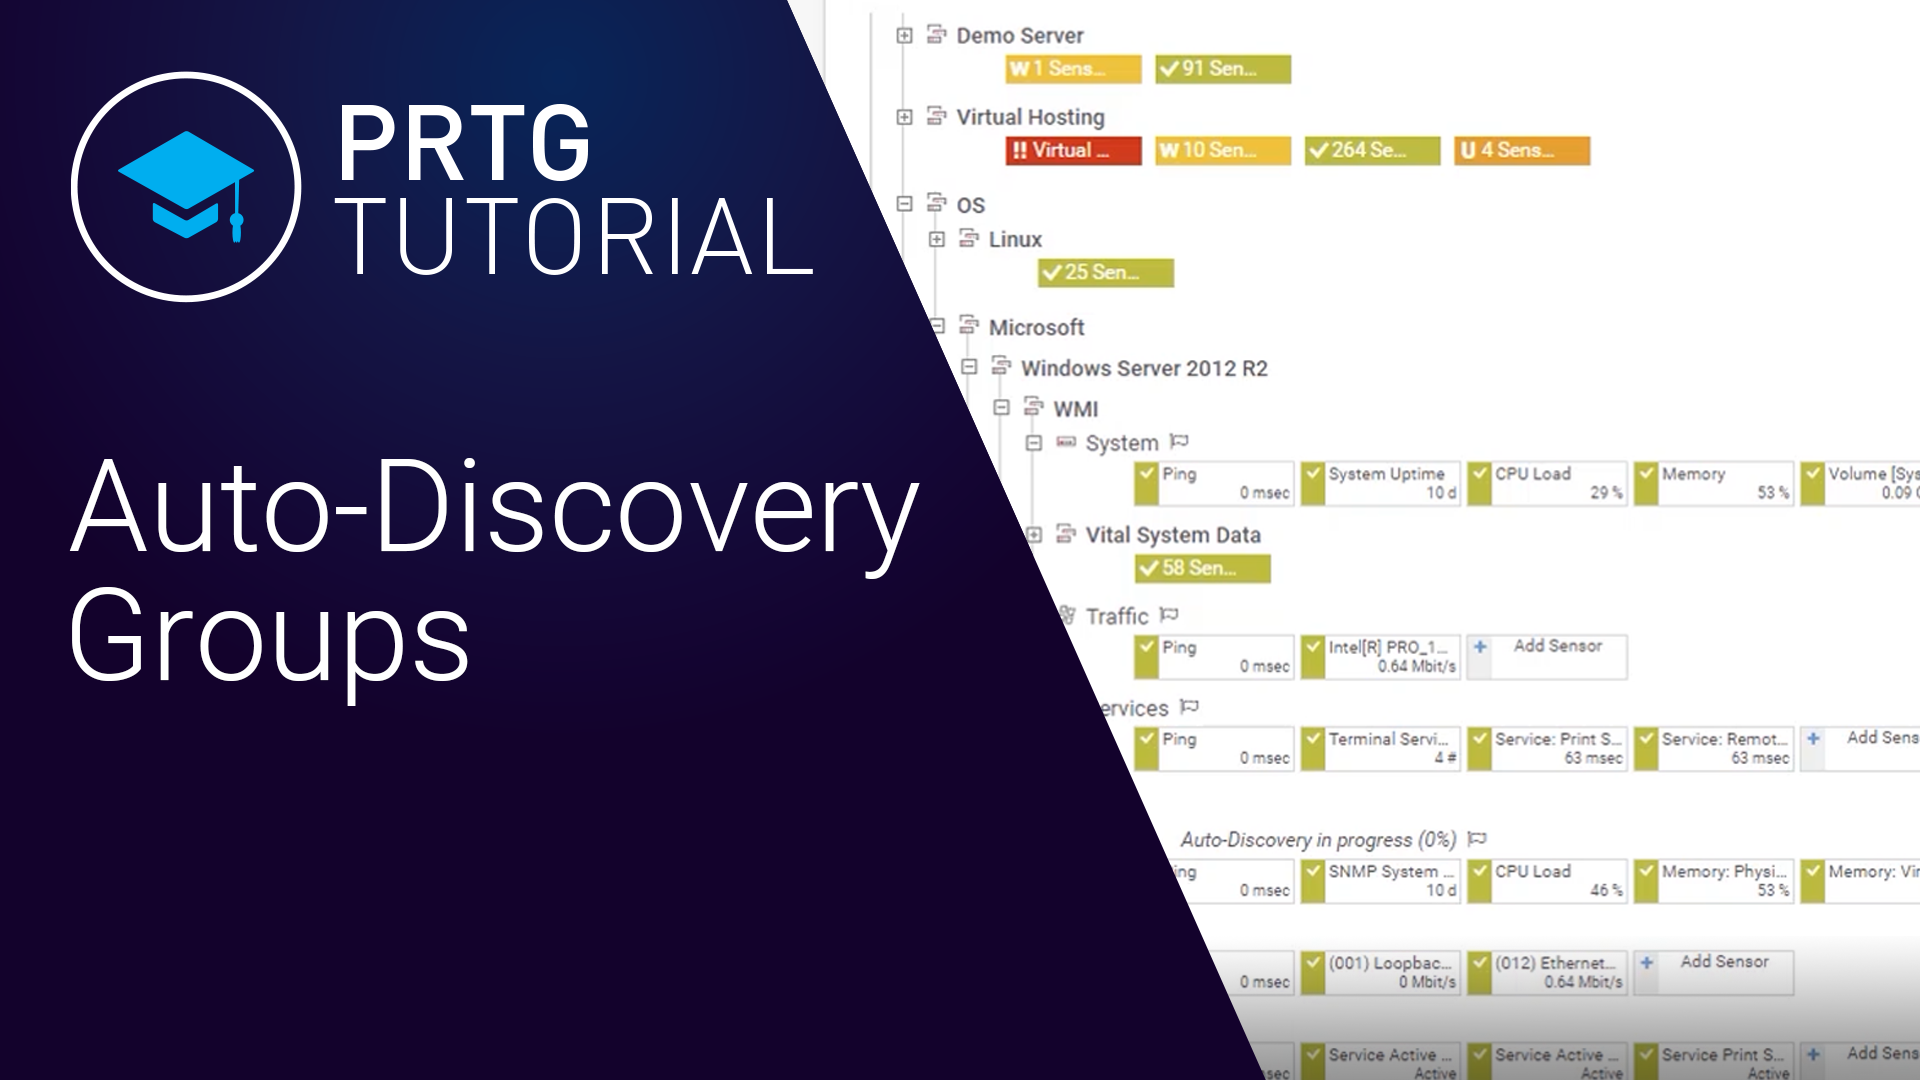 Video: Auto-discovery groups (Videos, Overview)